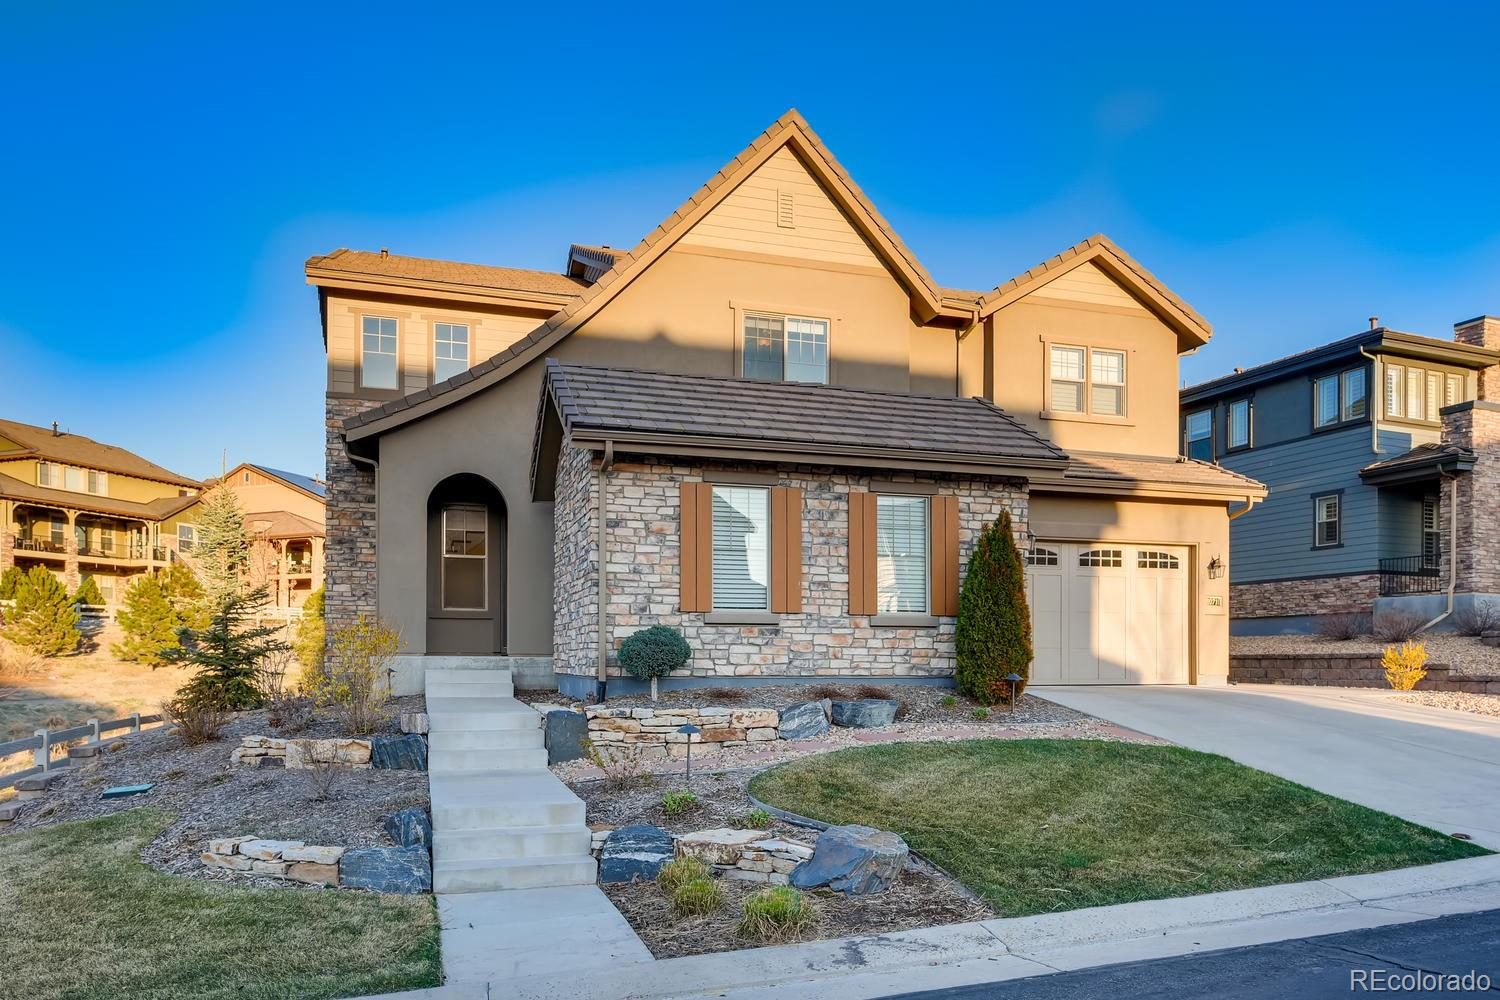 10710 Manorstone Drive, Highlands Ranch, CO 80126 - Highlands Ranch, CO real estate listing